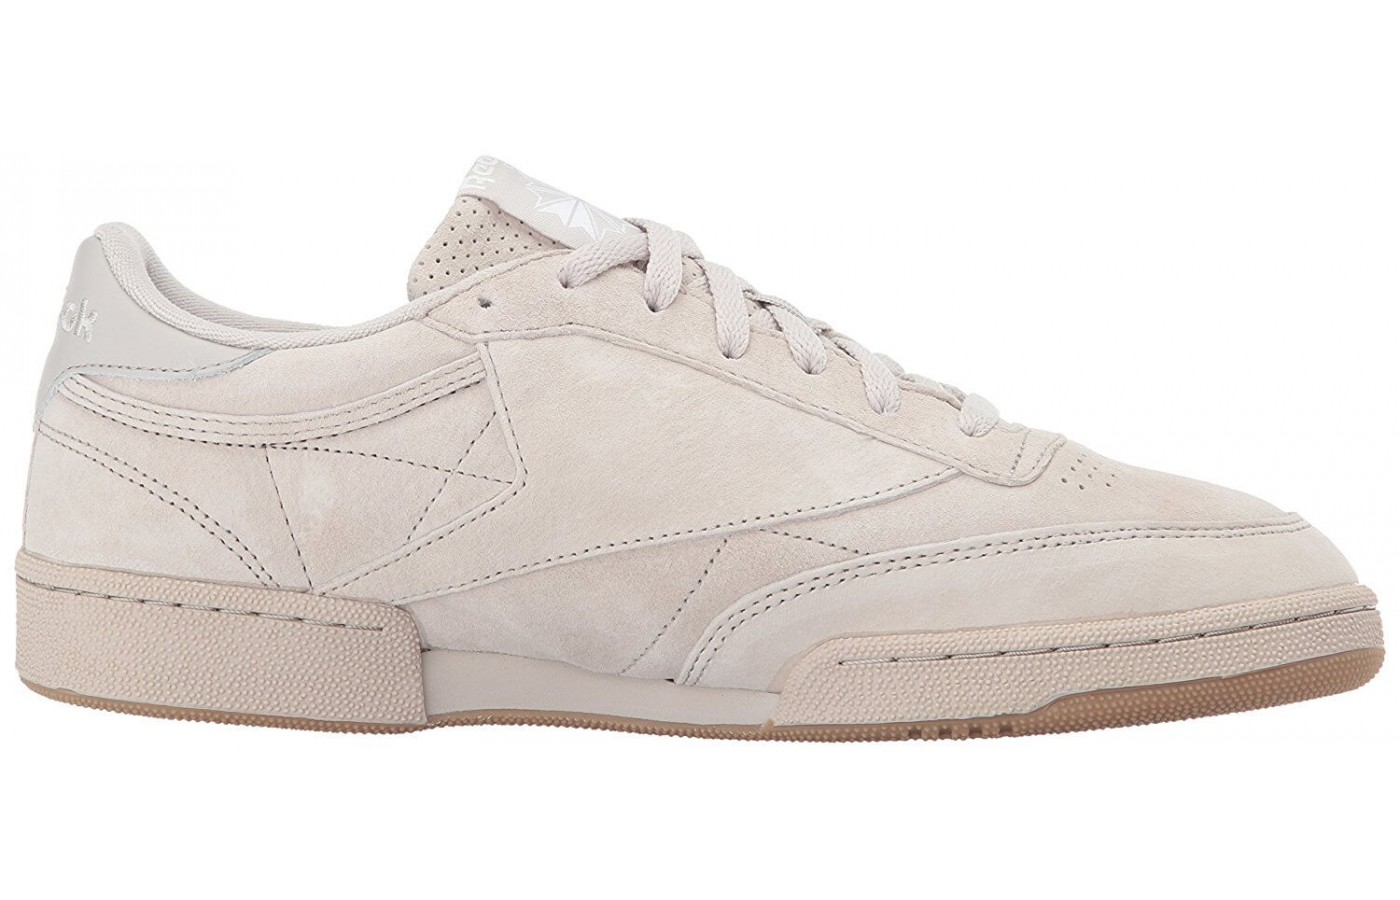 a5eb77812fcb ... The Reebok Club C 85 s midsole contains EVA foam ...